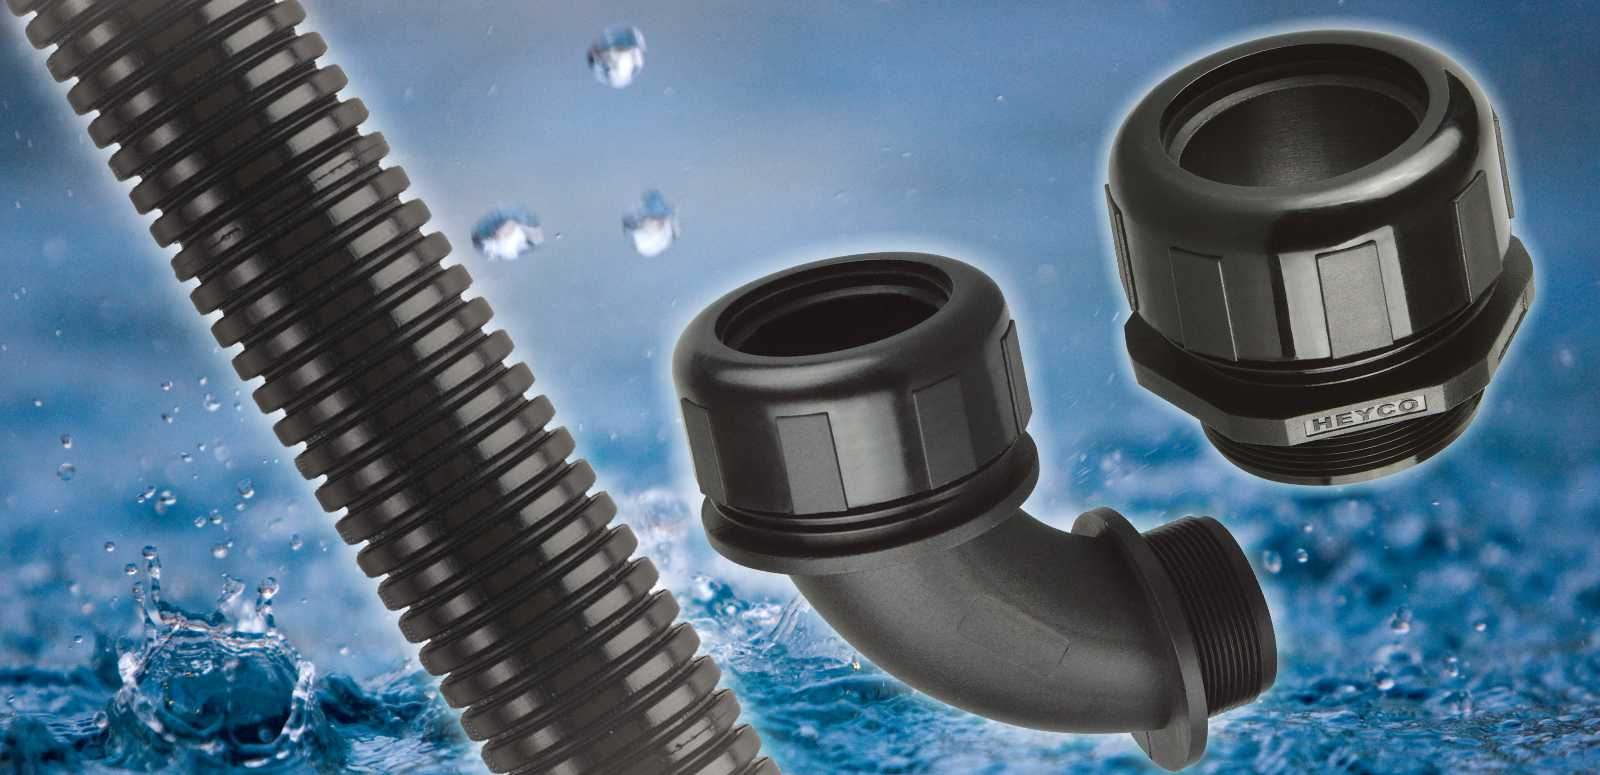 Heyco Nylon Corrugated Conduit and Fittings